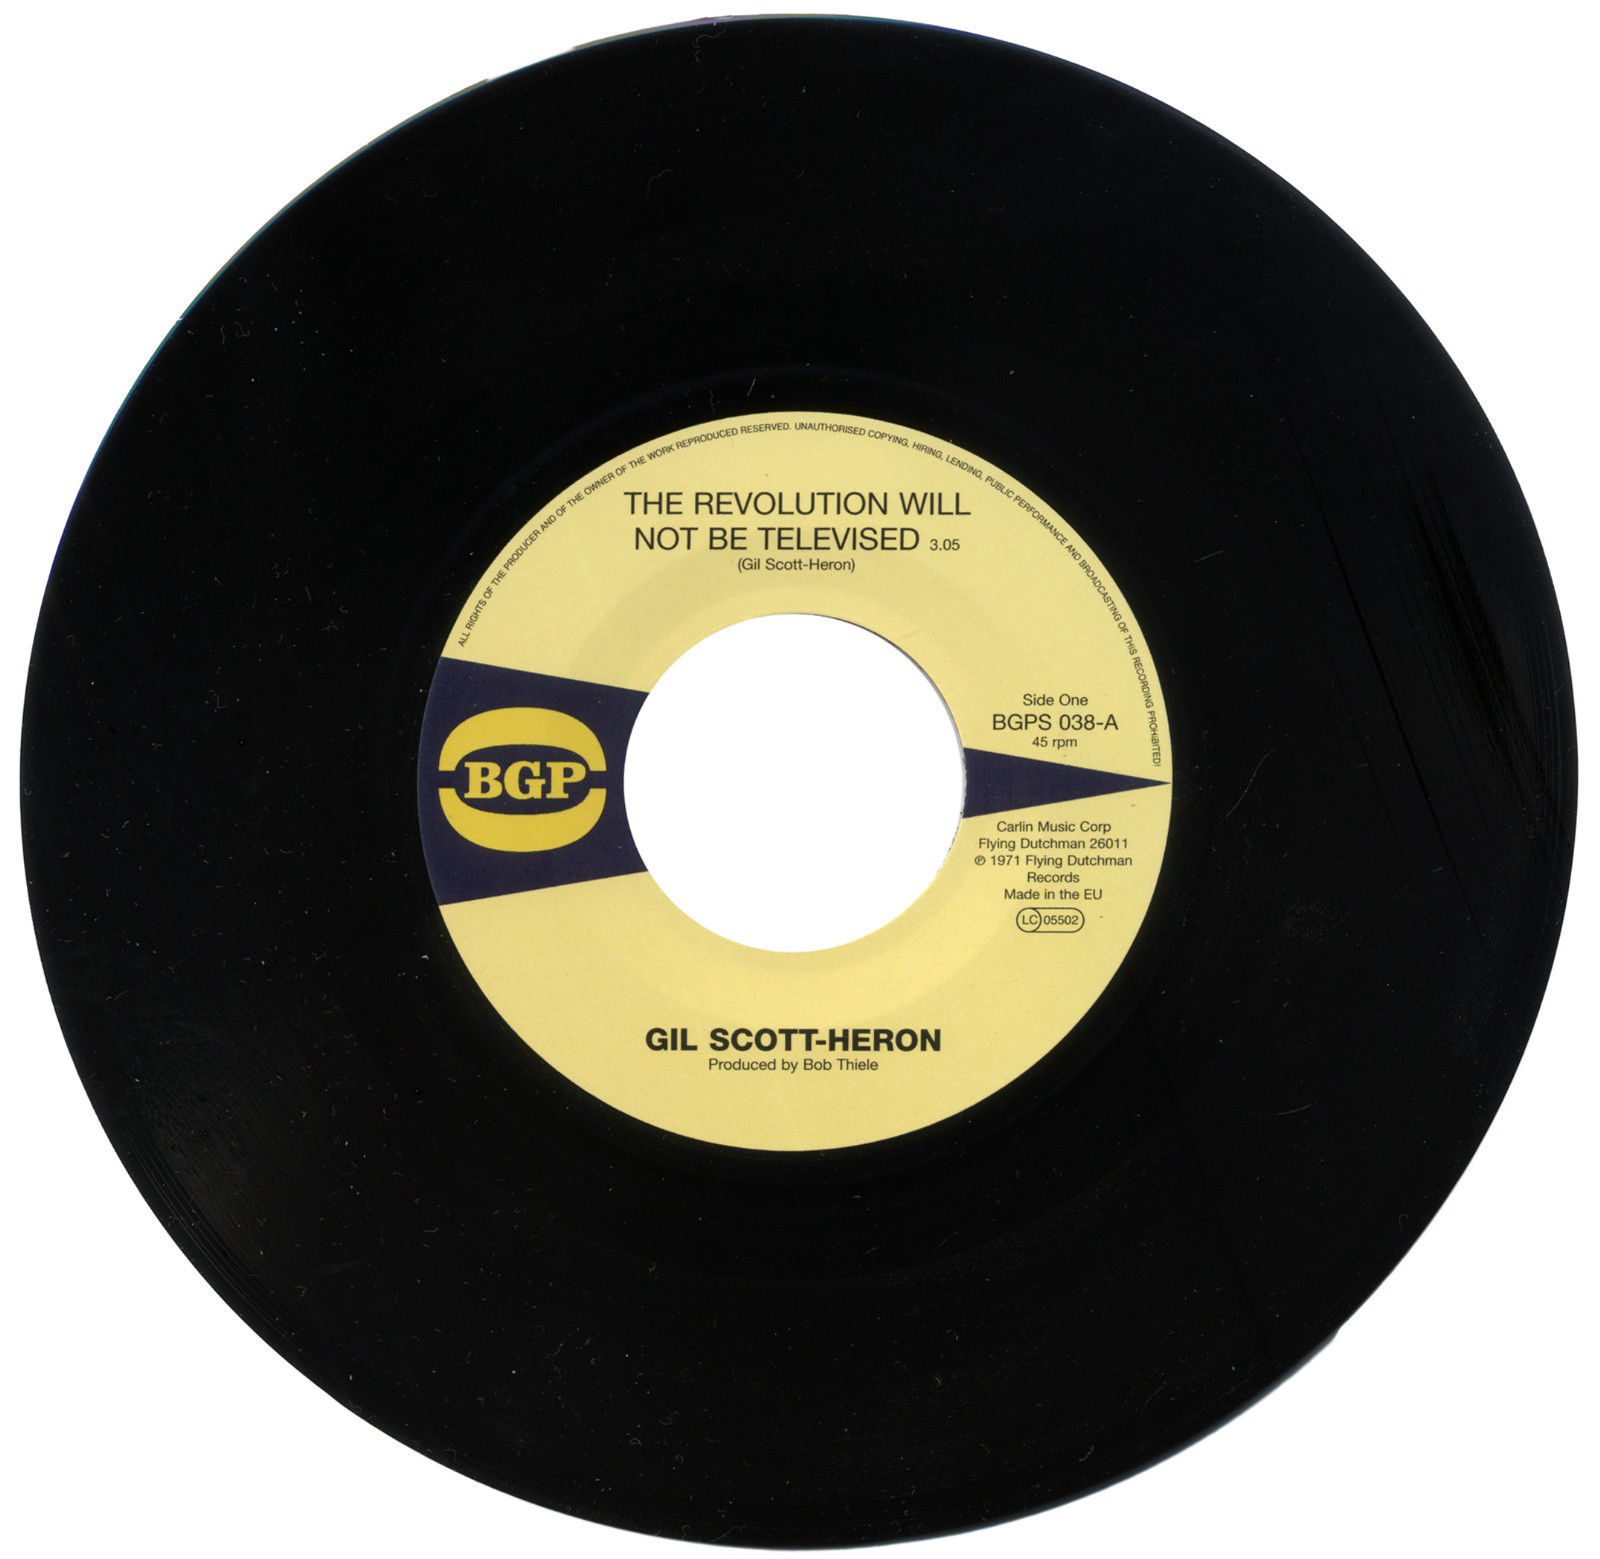 Gil Scott-Heron – The Revolution Will Not Be Televised / Home Is Where The Hatred Is 45 (BGP) 7″ Vinyl